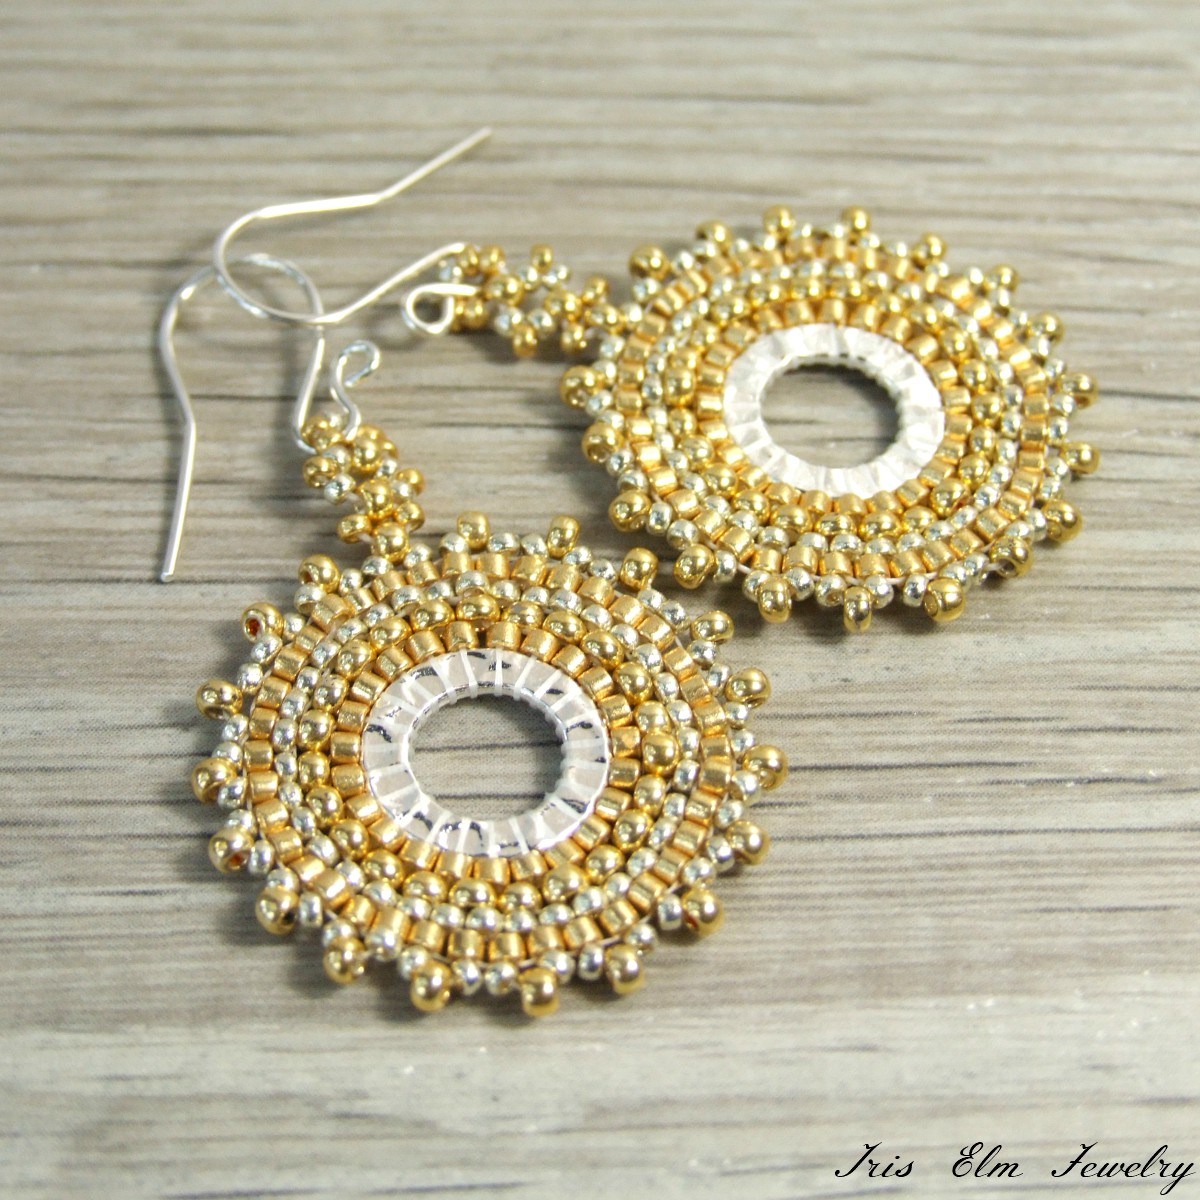 金Boho Woven Seed Bead Hoop Dangle  耳环